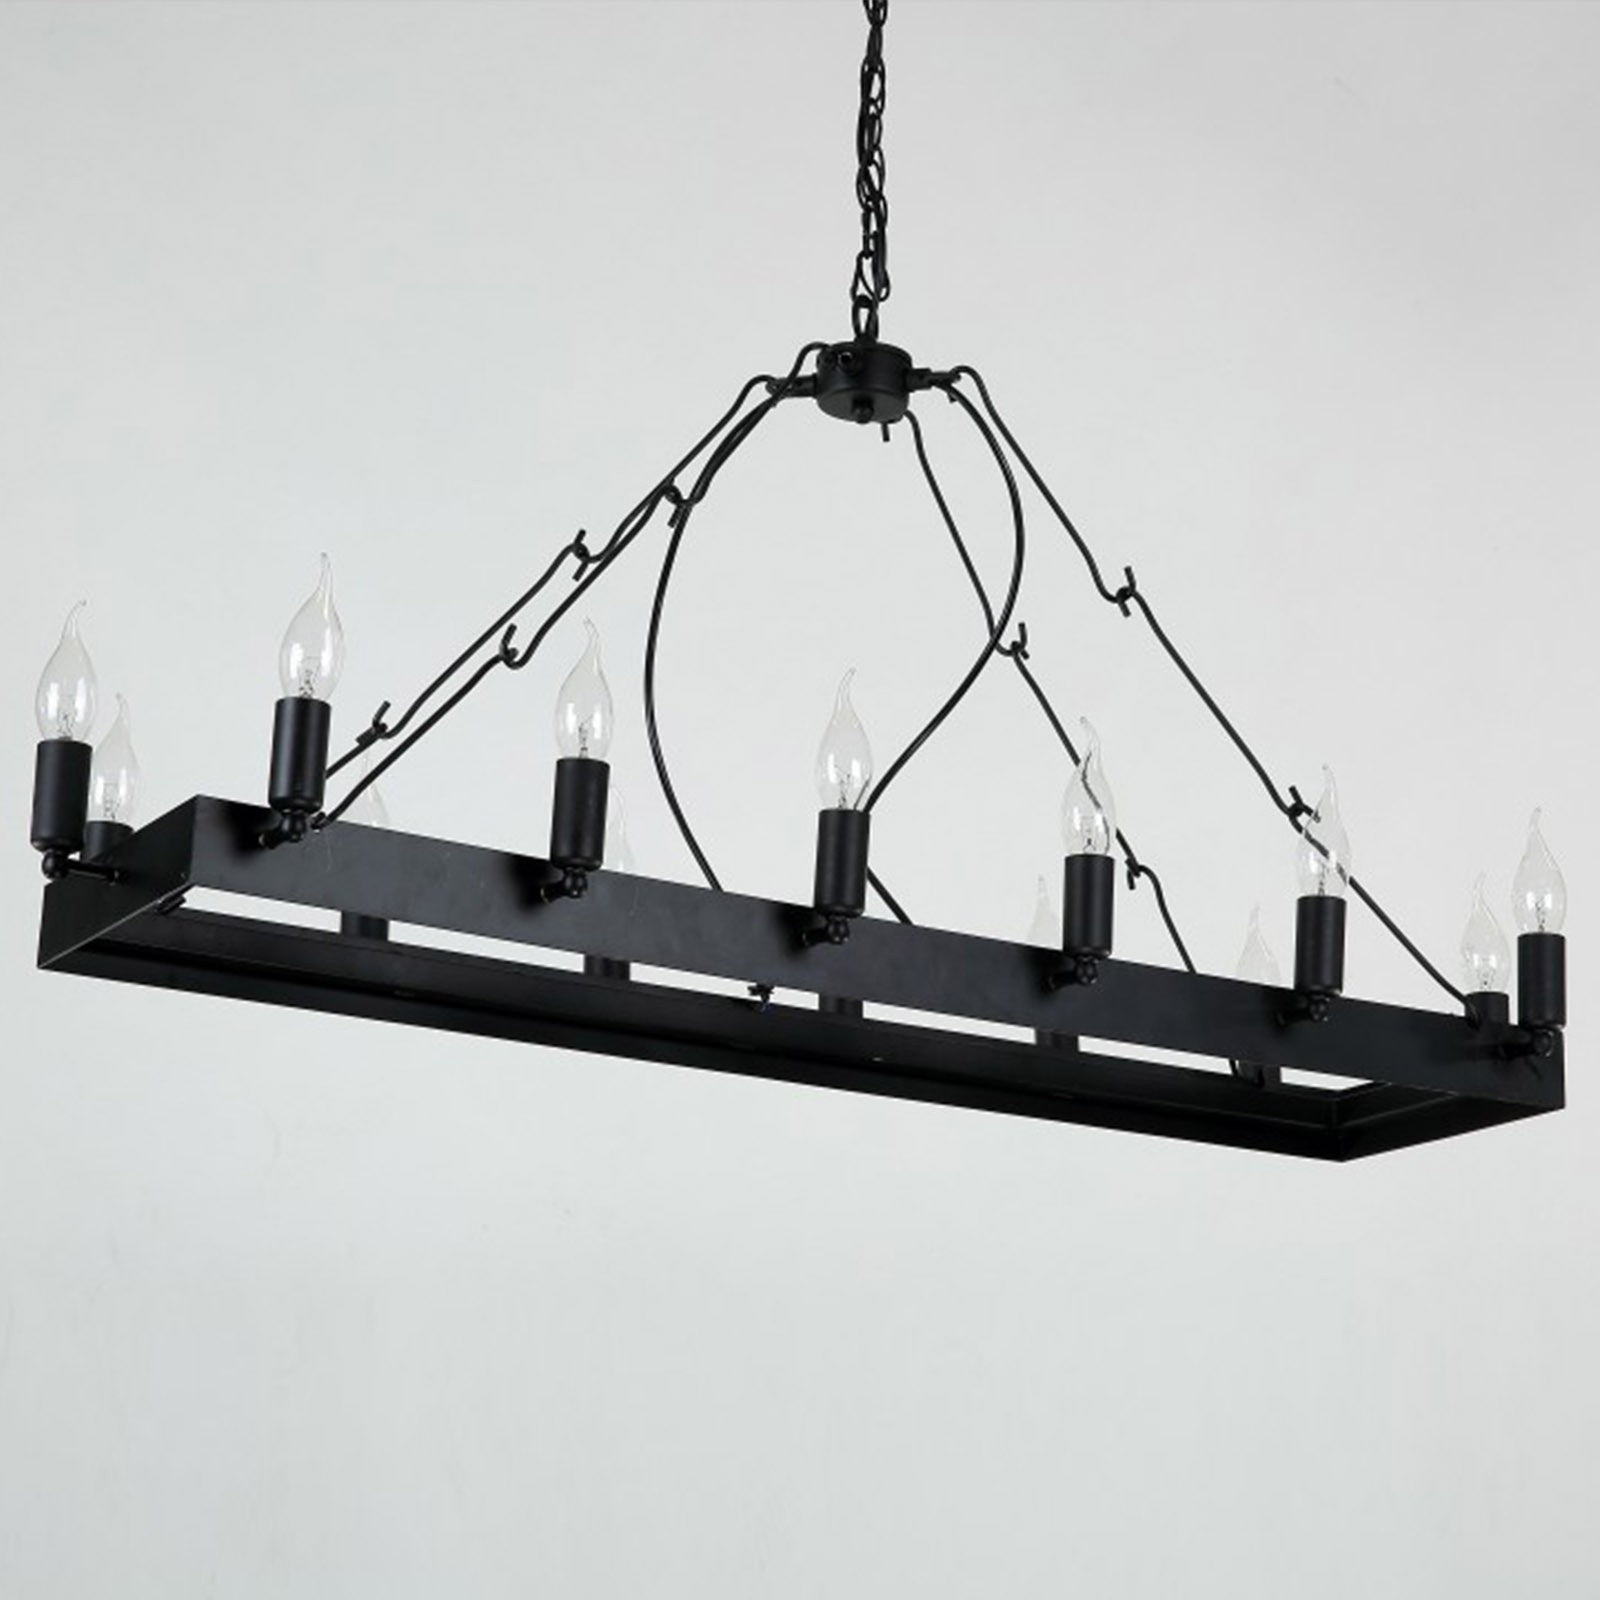 12 Heads  Vintage  Chandelier  CY-DD-215 -  ثريا 12 رأس - Shop Online Furniture and Home Decor Store in Dubai, UAE at ebarza